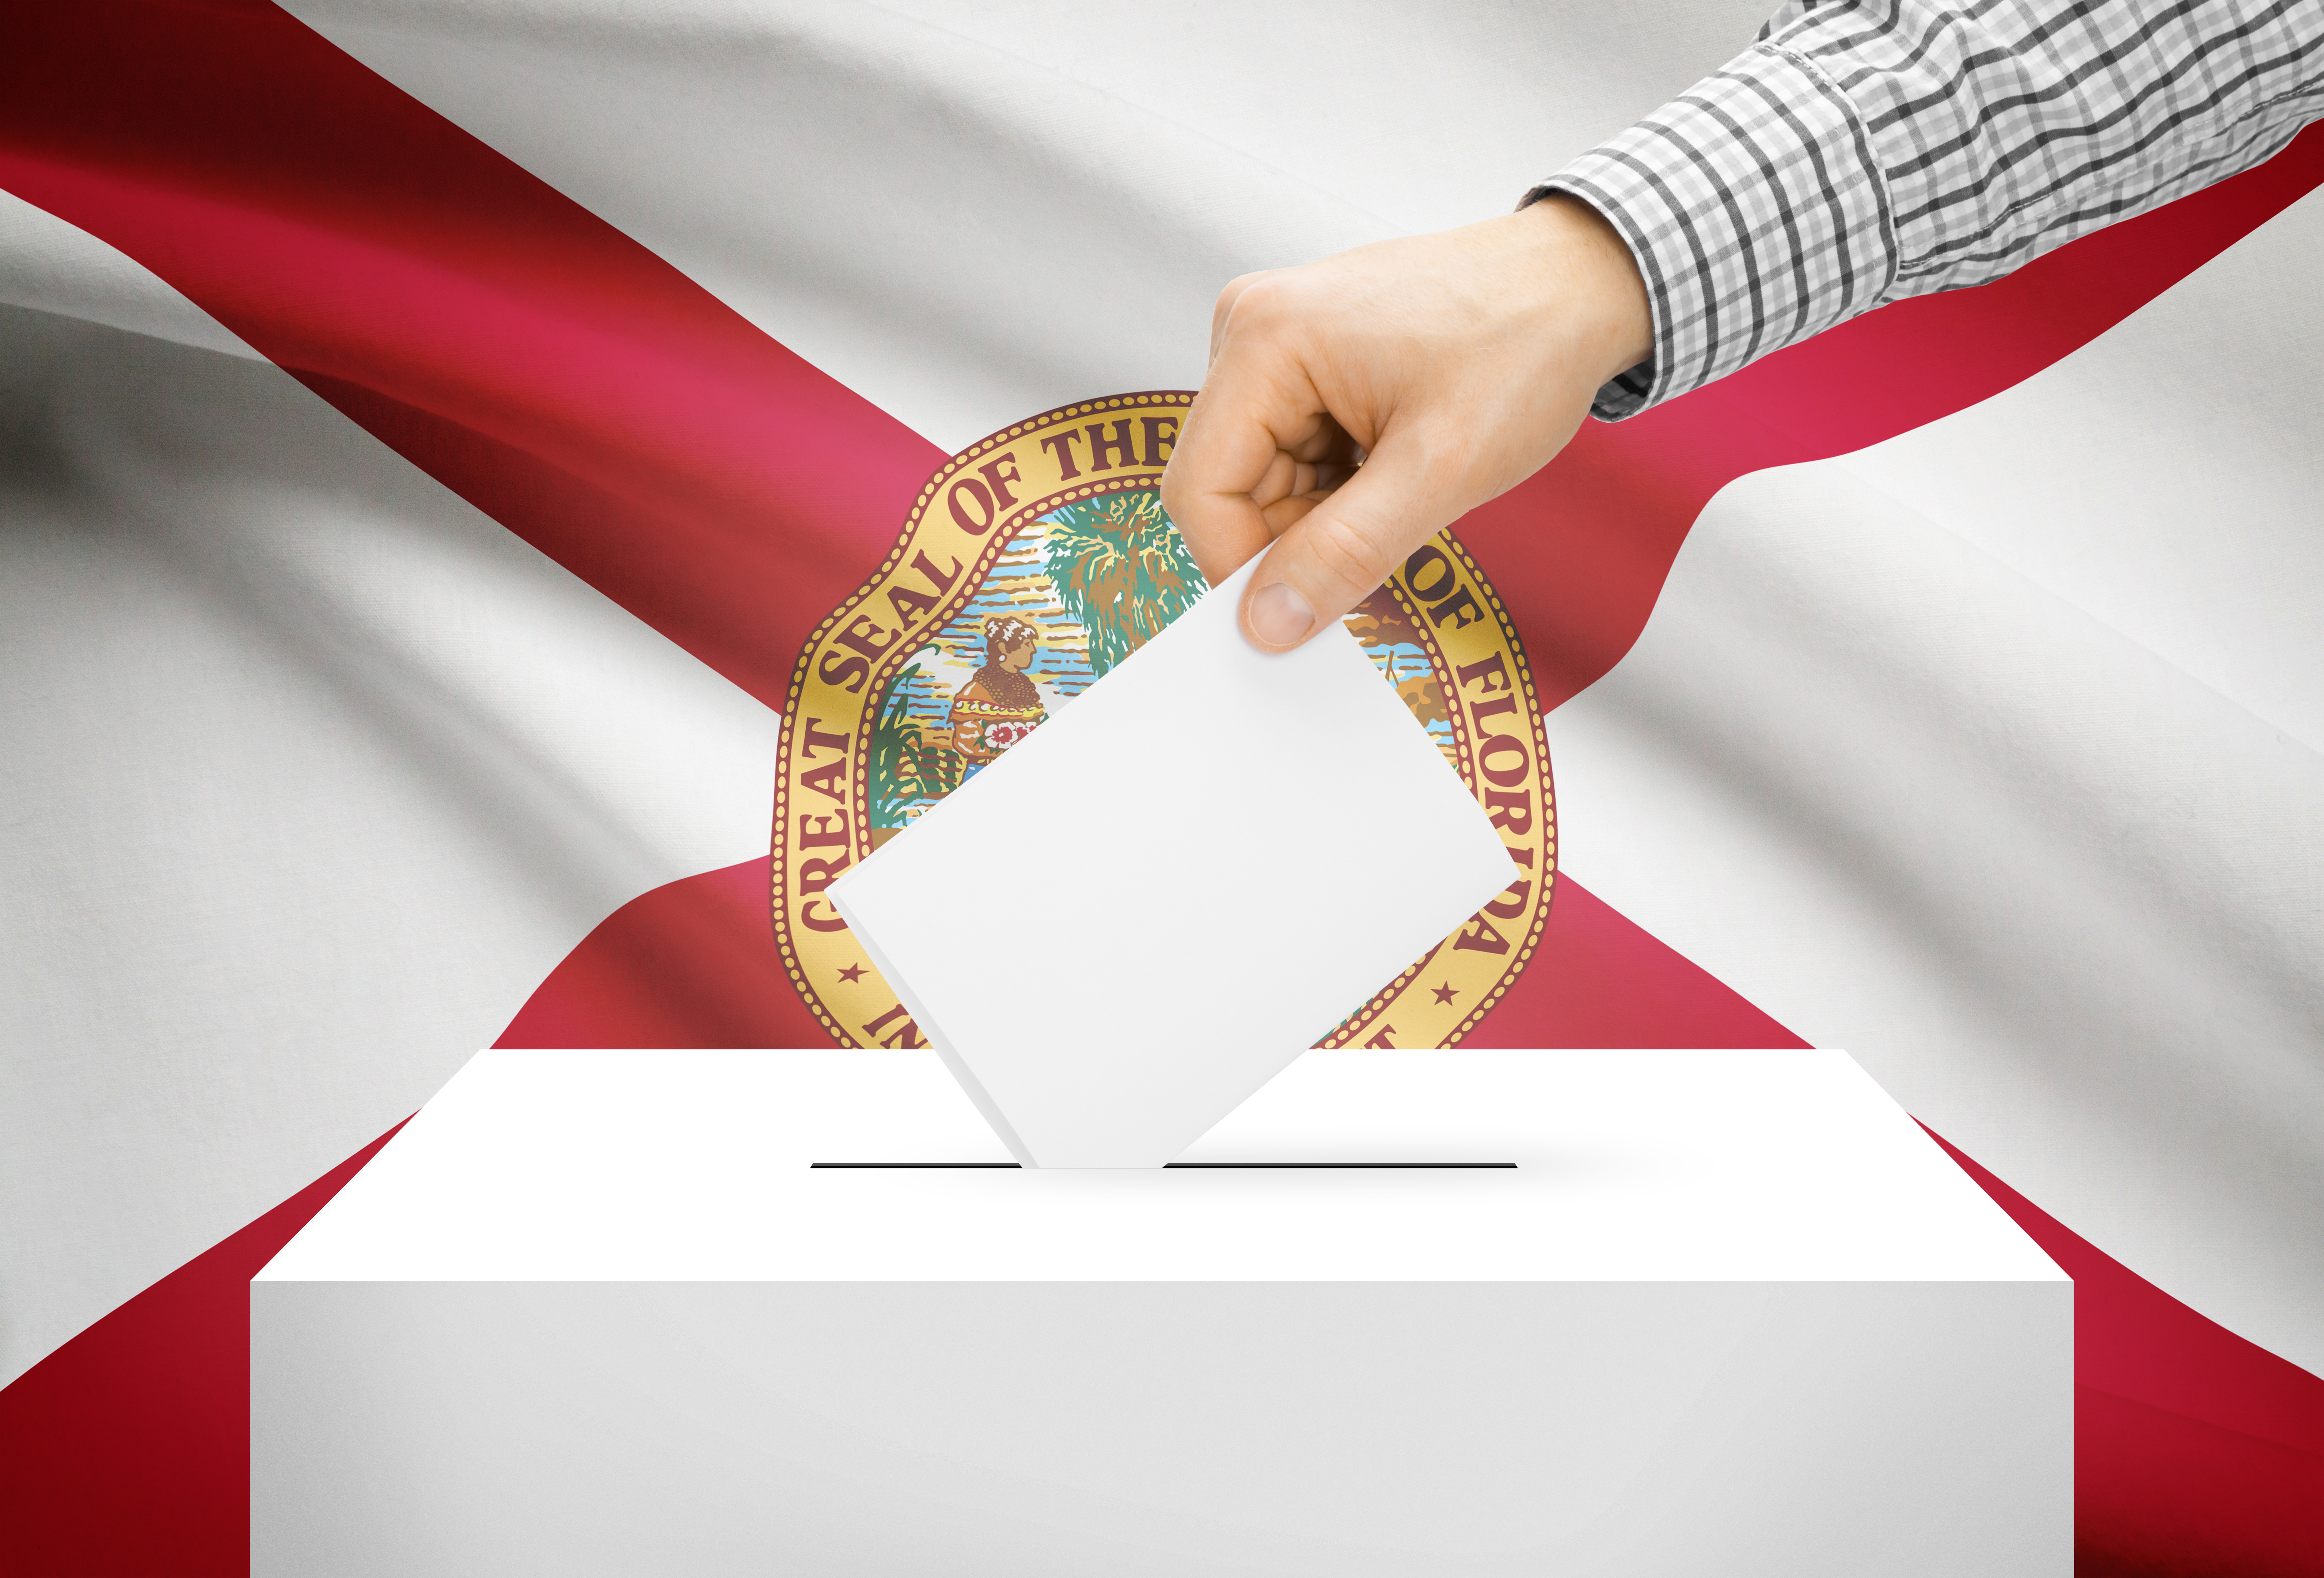 Ballot box with national flag on background - Florida